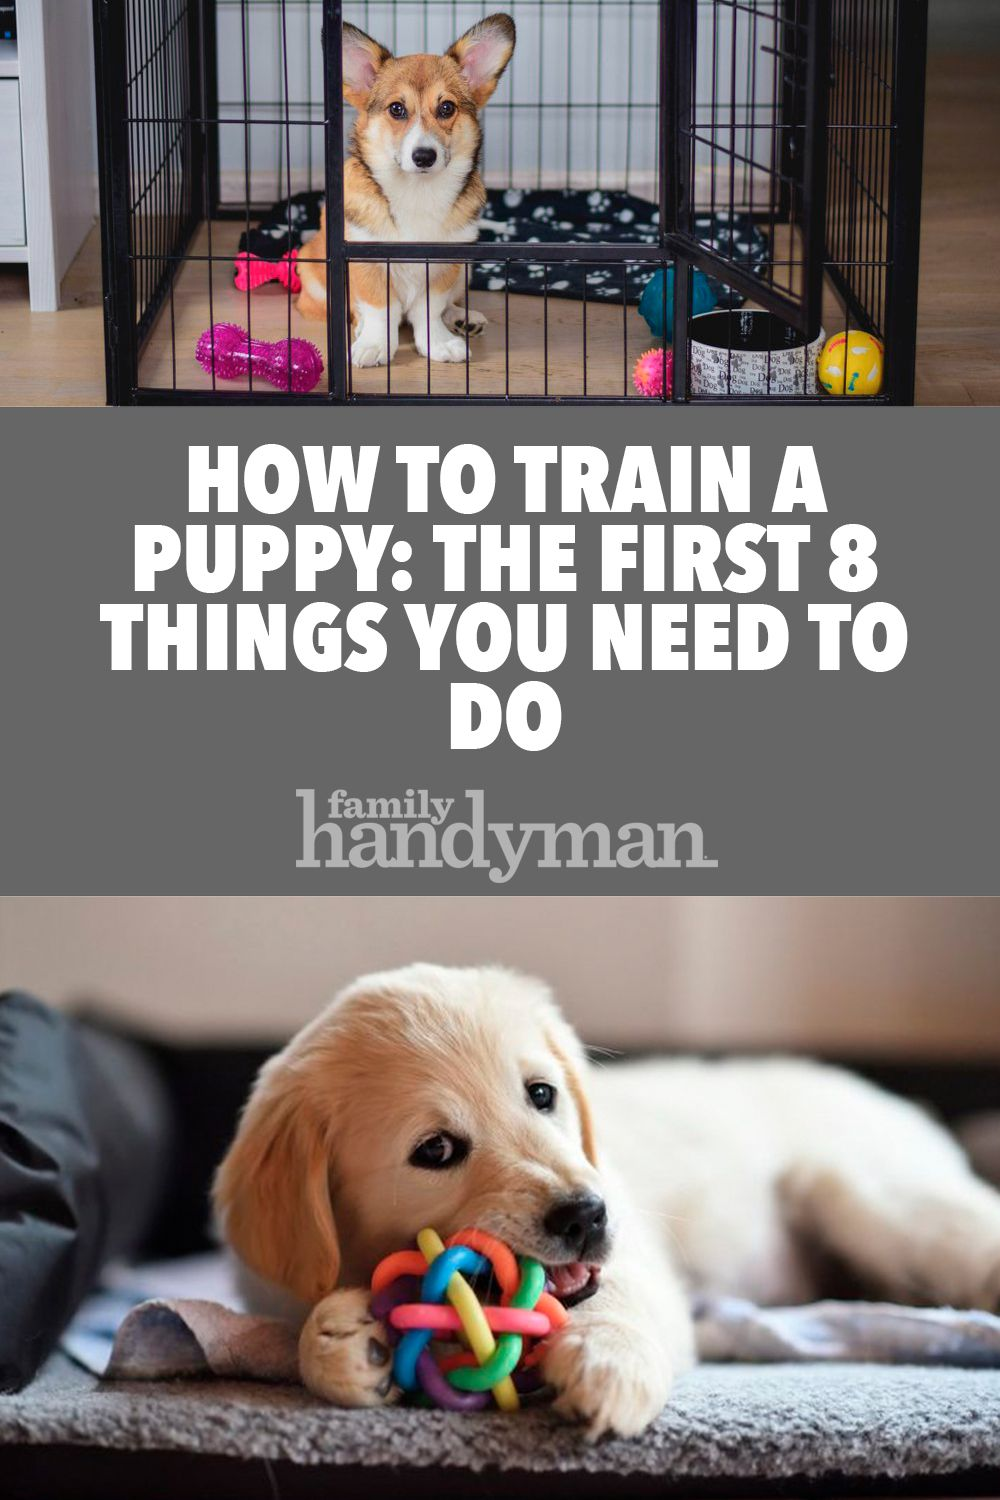 How to Train a Puppy: The First 8 Things You Need to Do #pupy